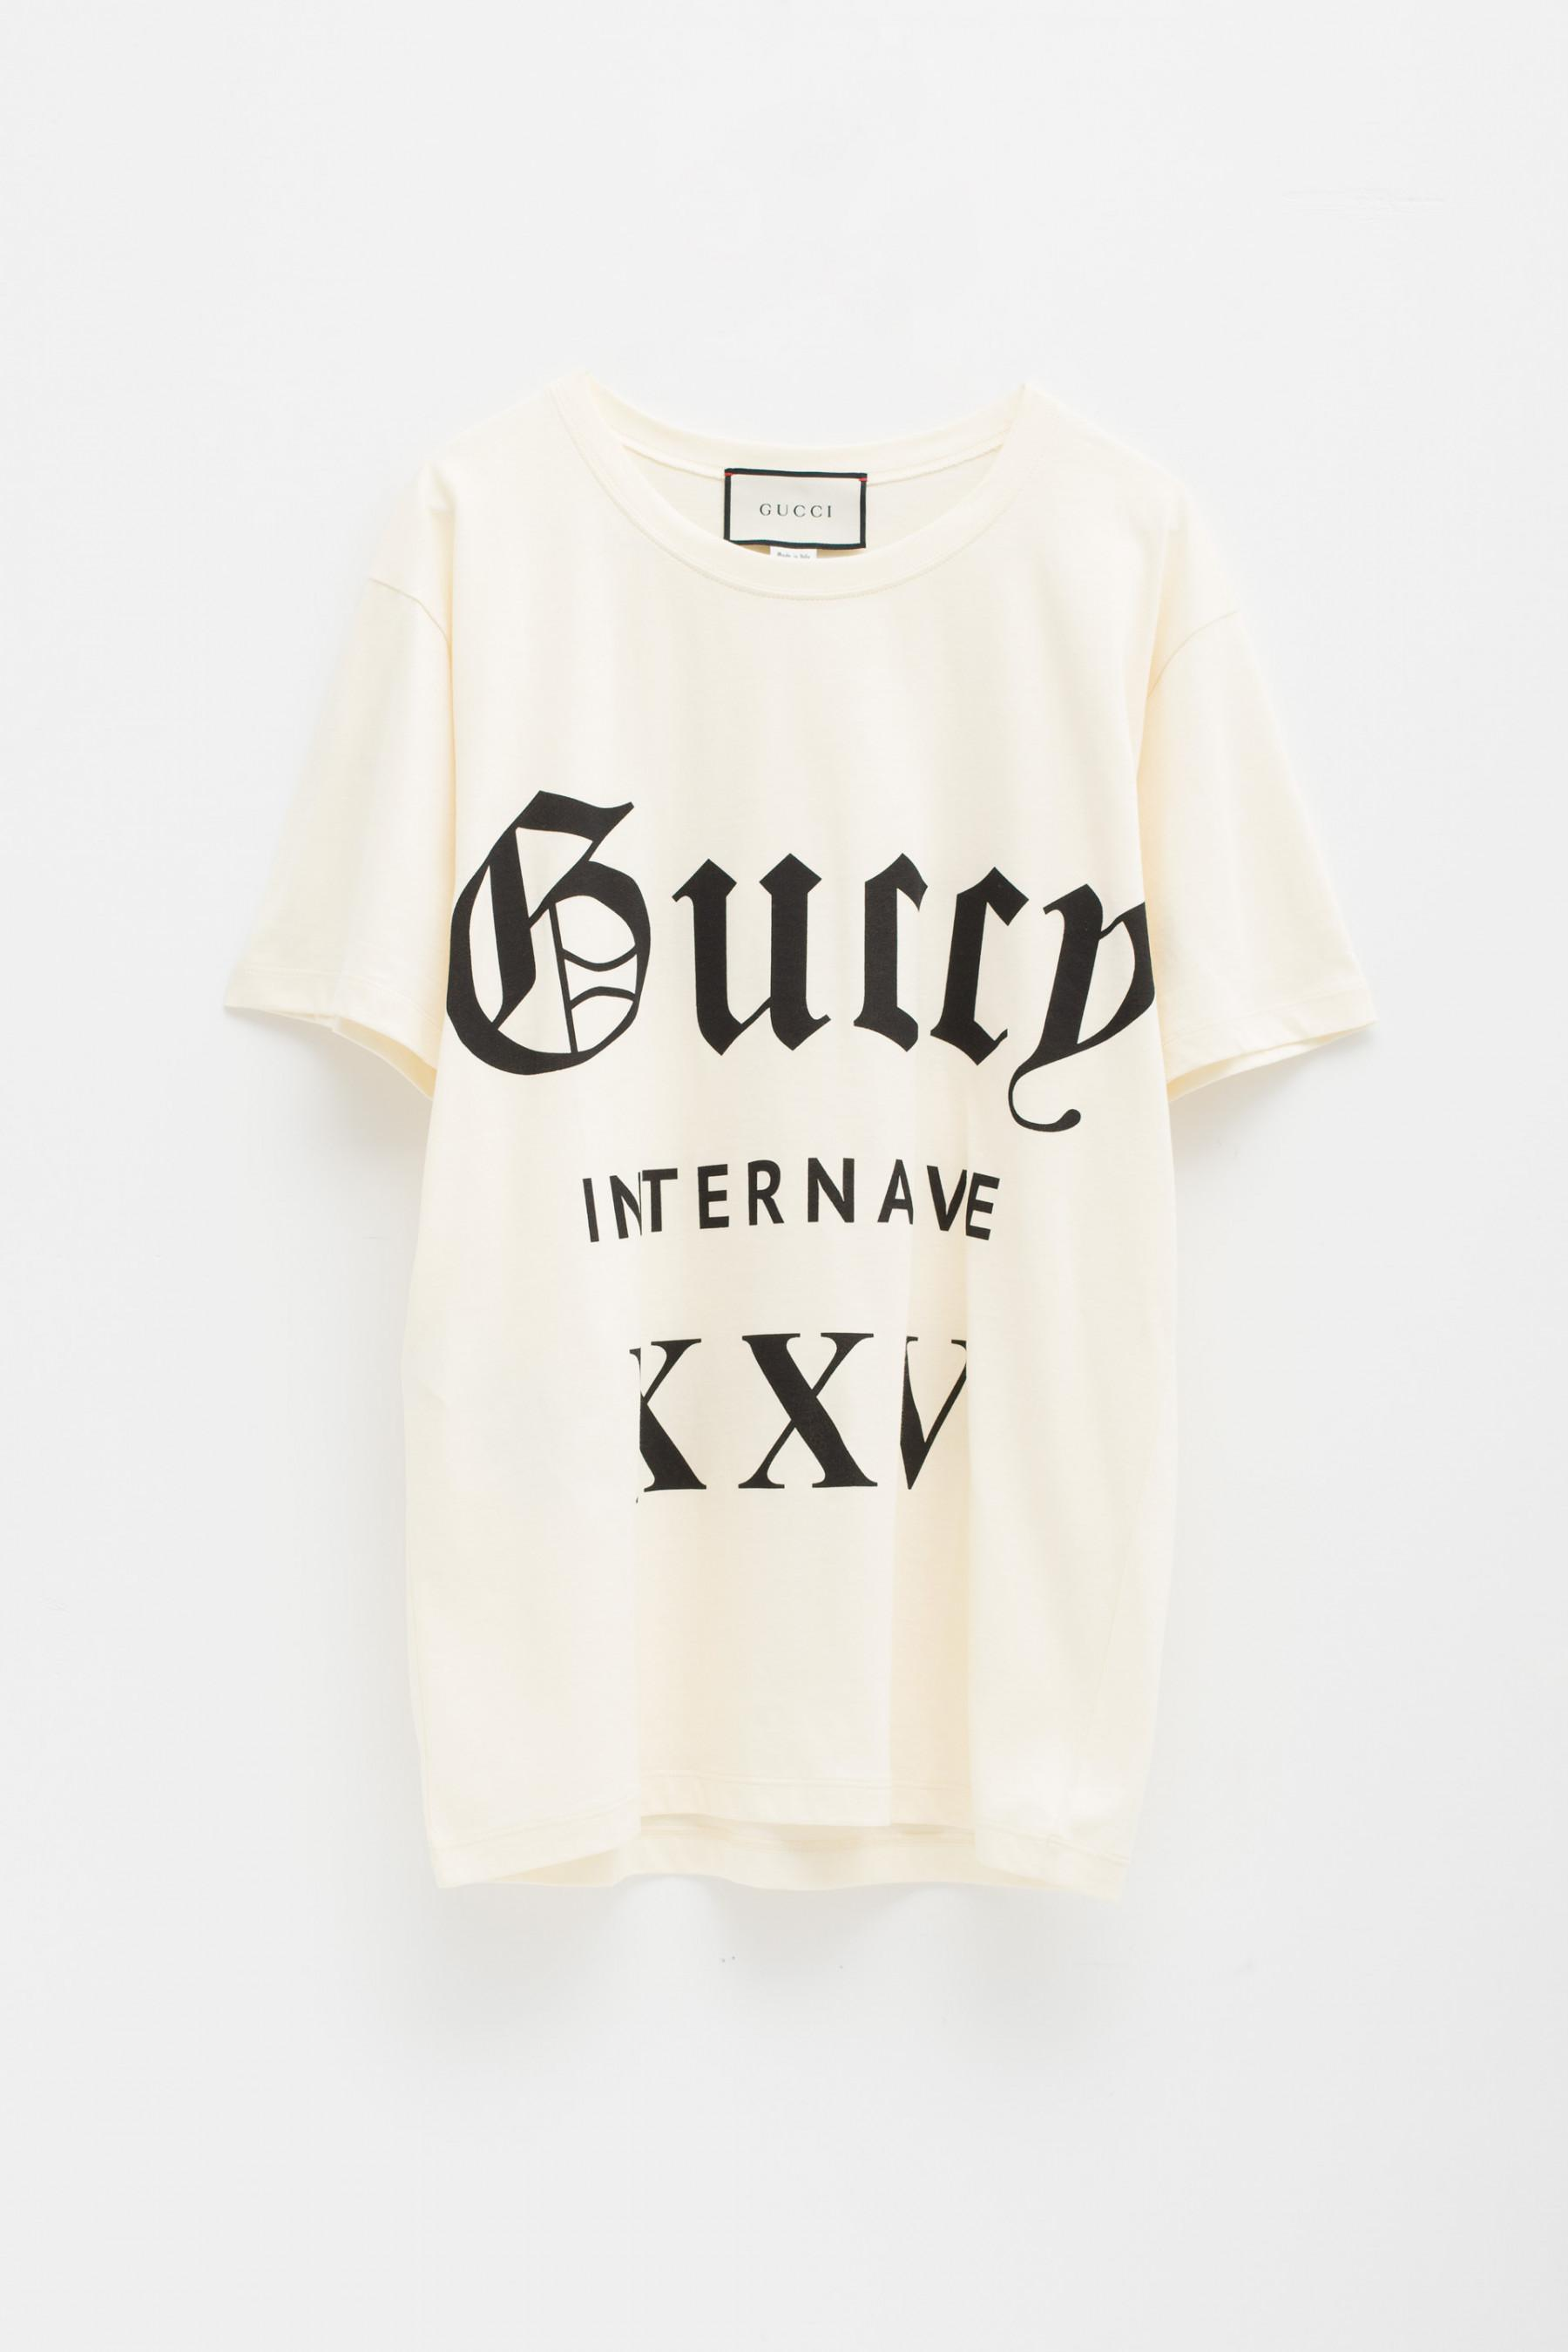 8c886f8f45a Gucci - Natural Oversize T-shirt Guccy Internaive Xxv - Lyst. View  fullscreen